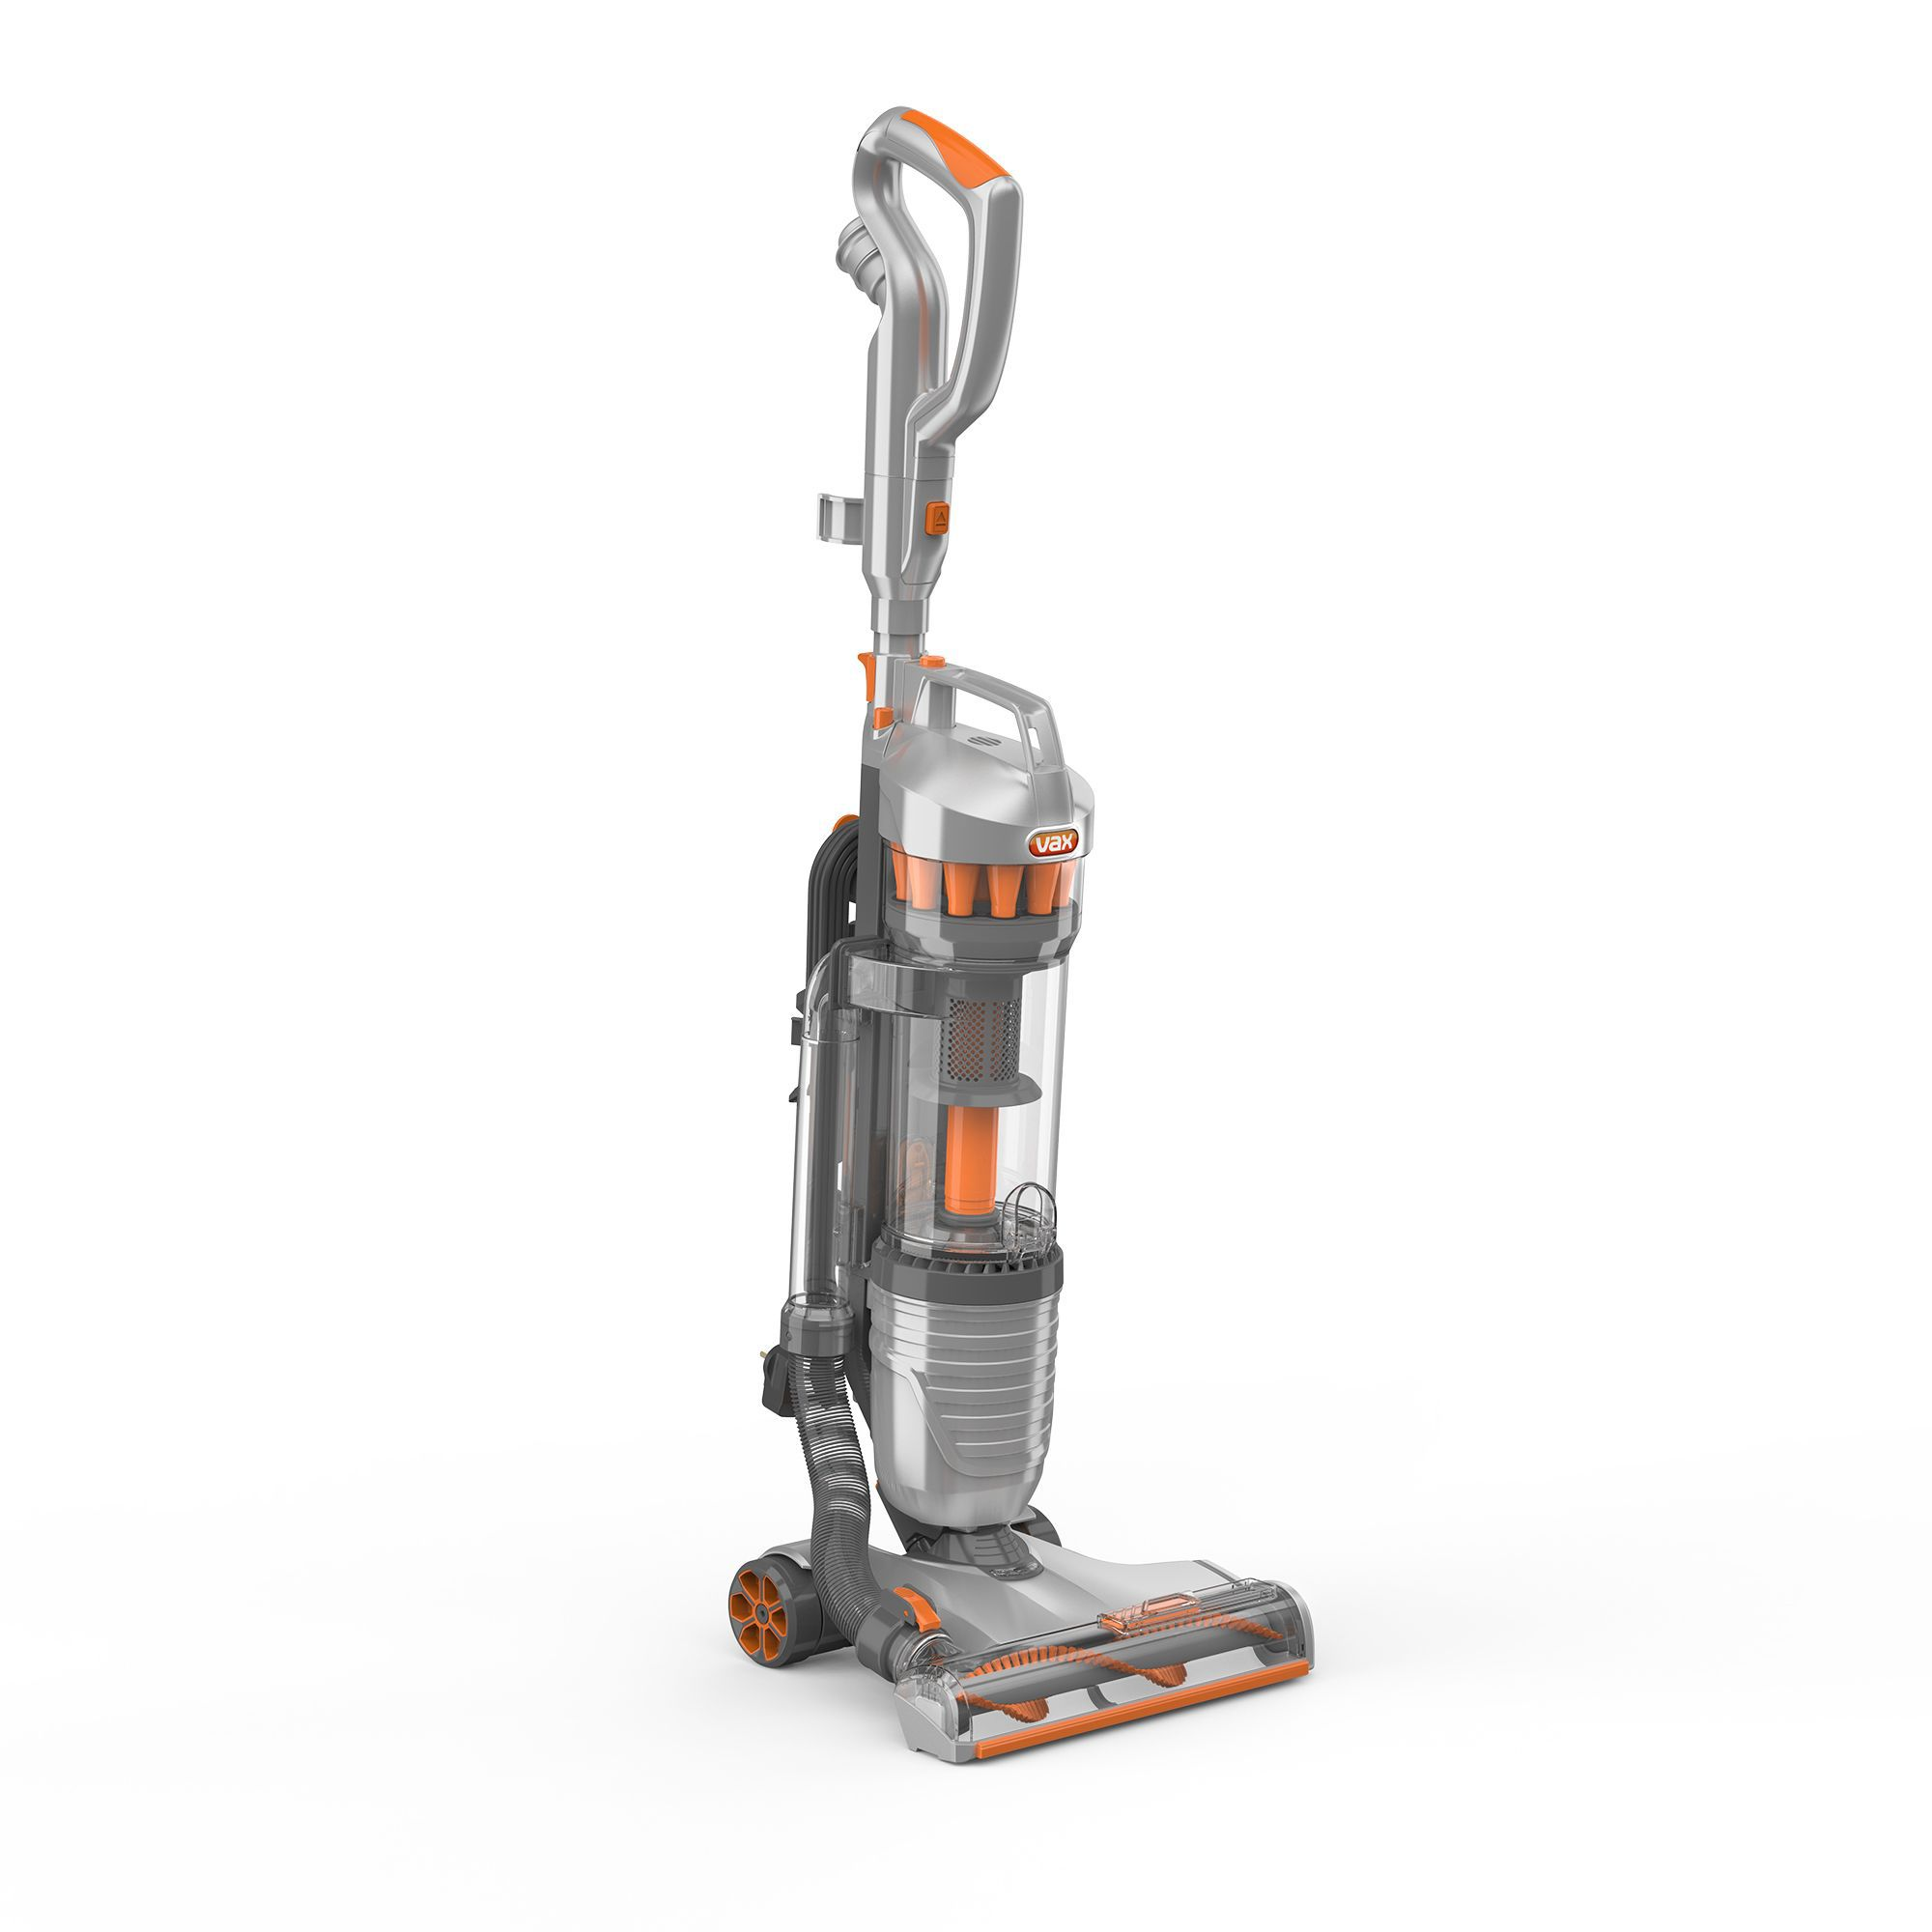 Vax Air Corded Bagless Vacuum Cleaner U87-aa-be